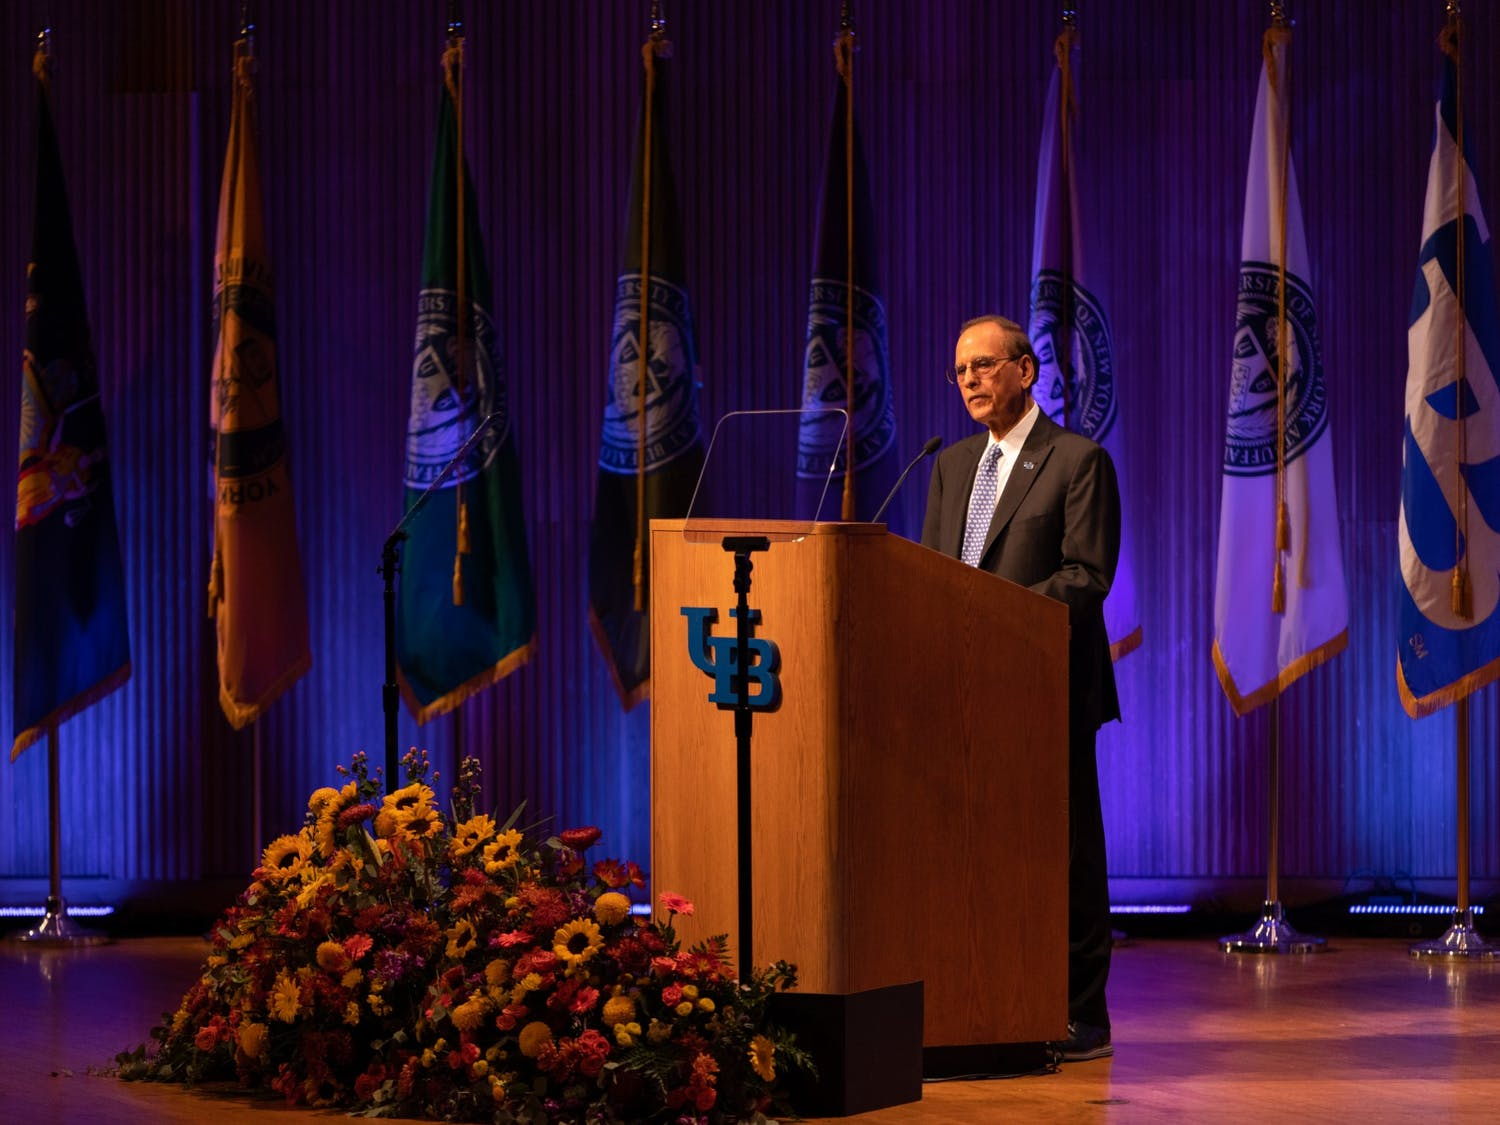 President Satish Tripathi gave his annual State of the University address on Friday at Alumni Arena.